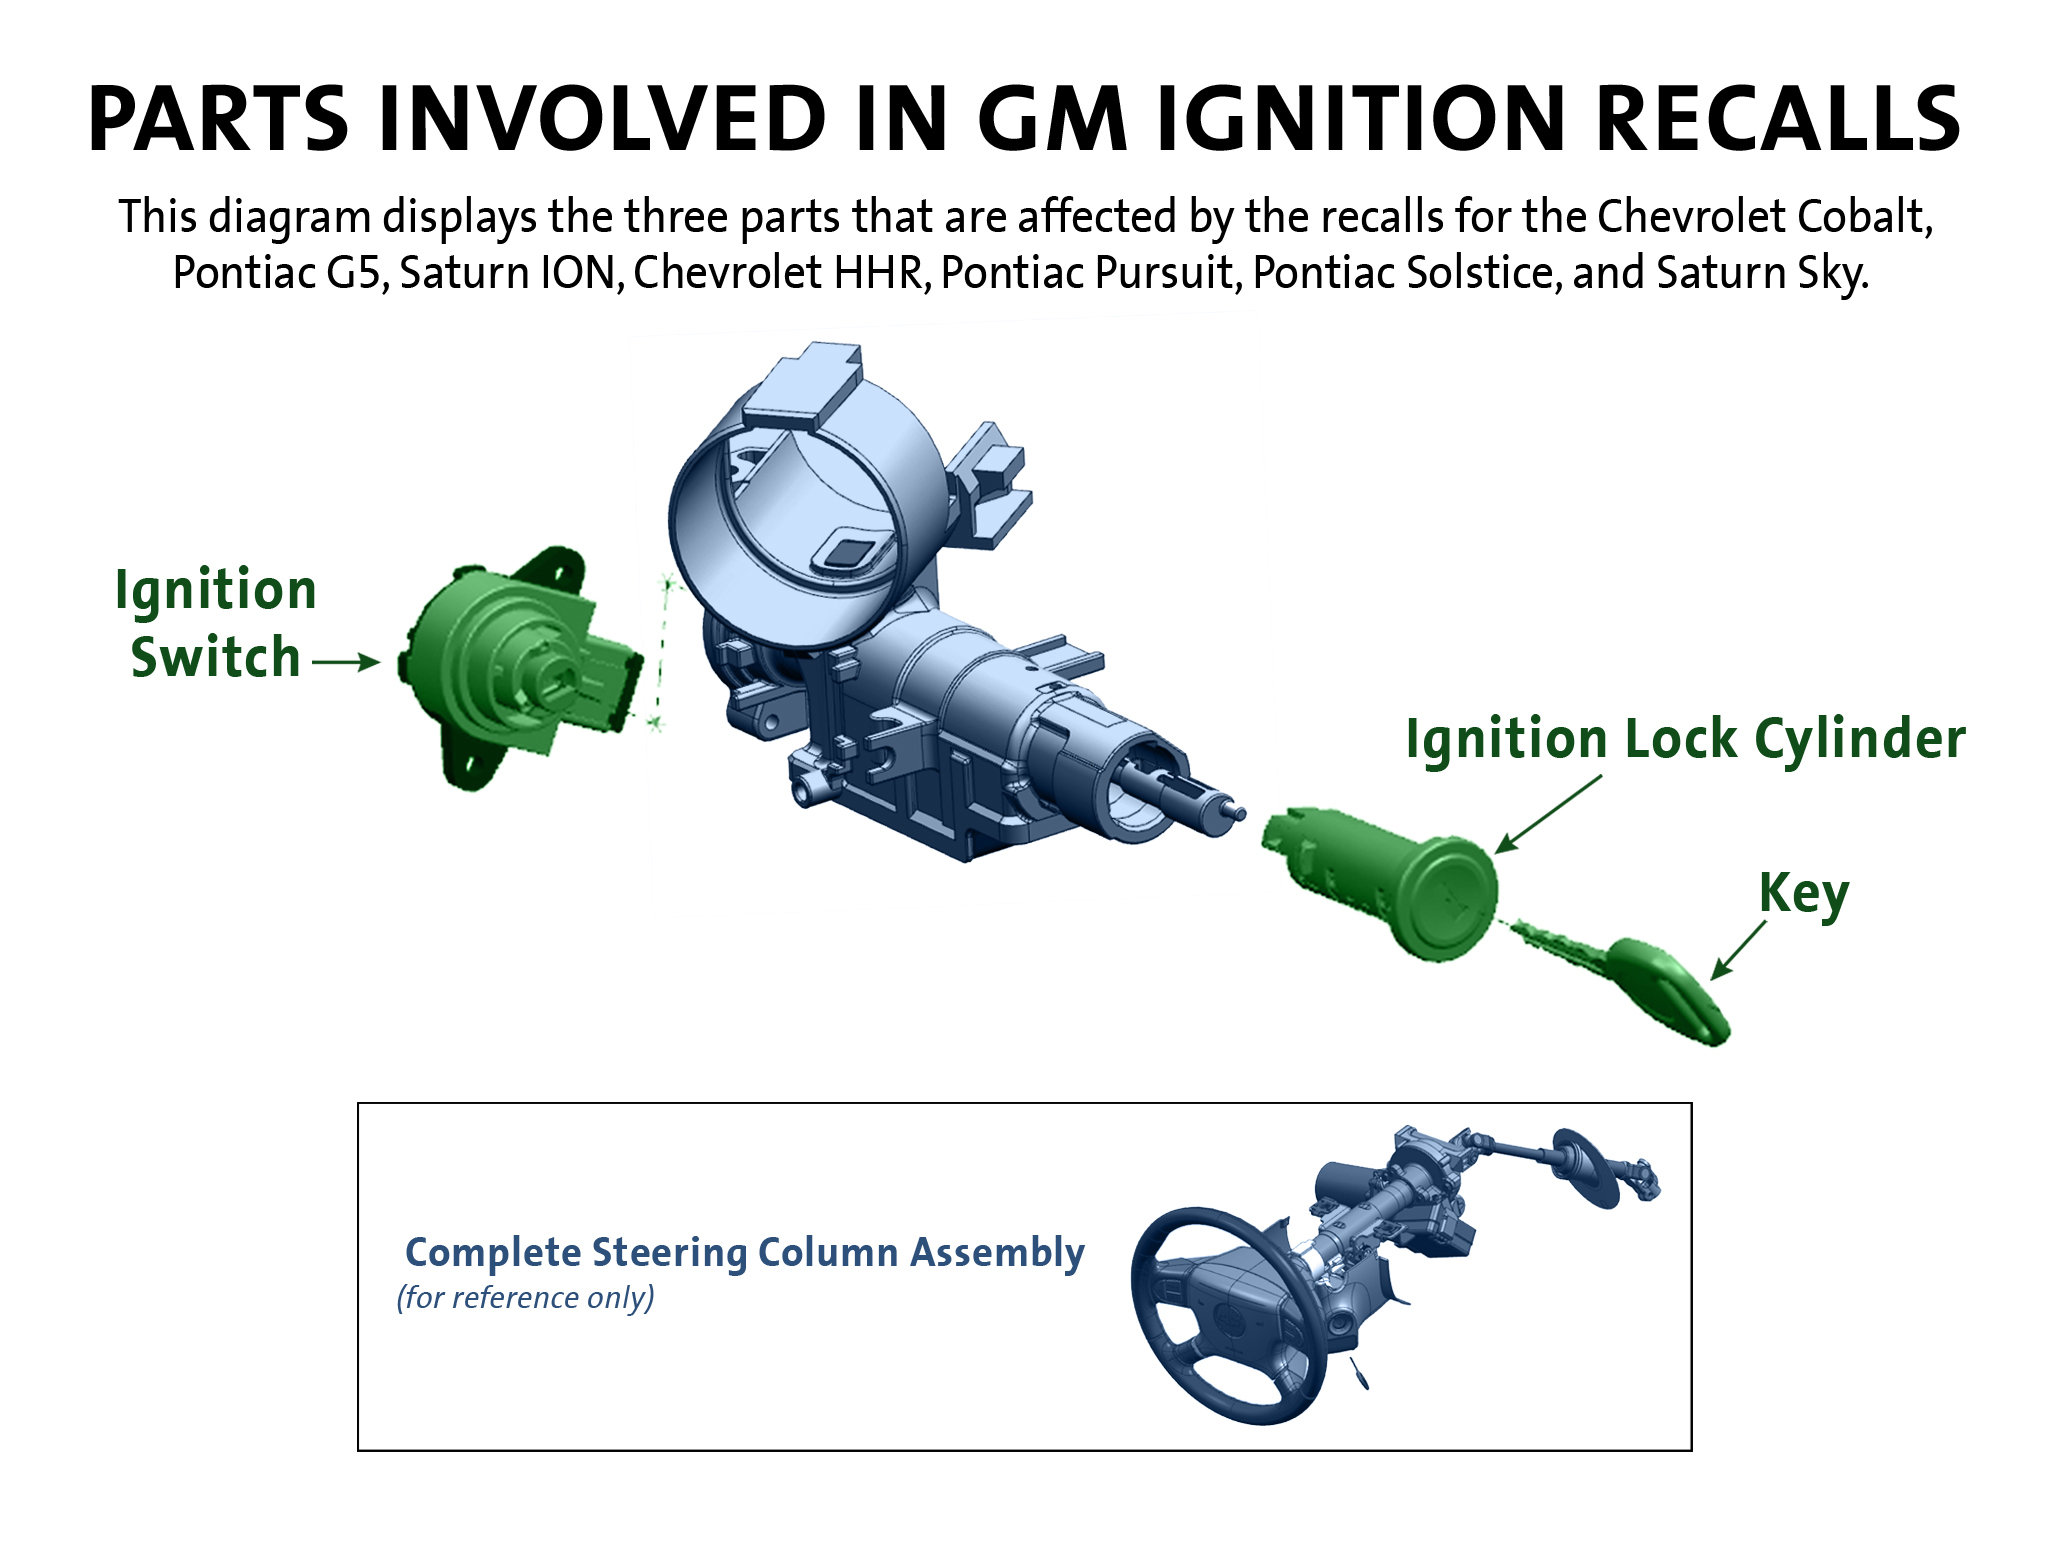 GM to Replace Lock Cylinder During Ignition Switch Recall